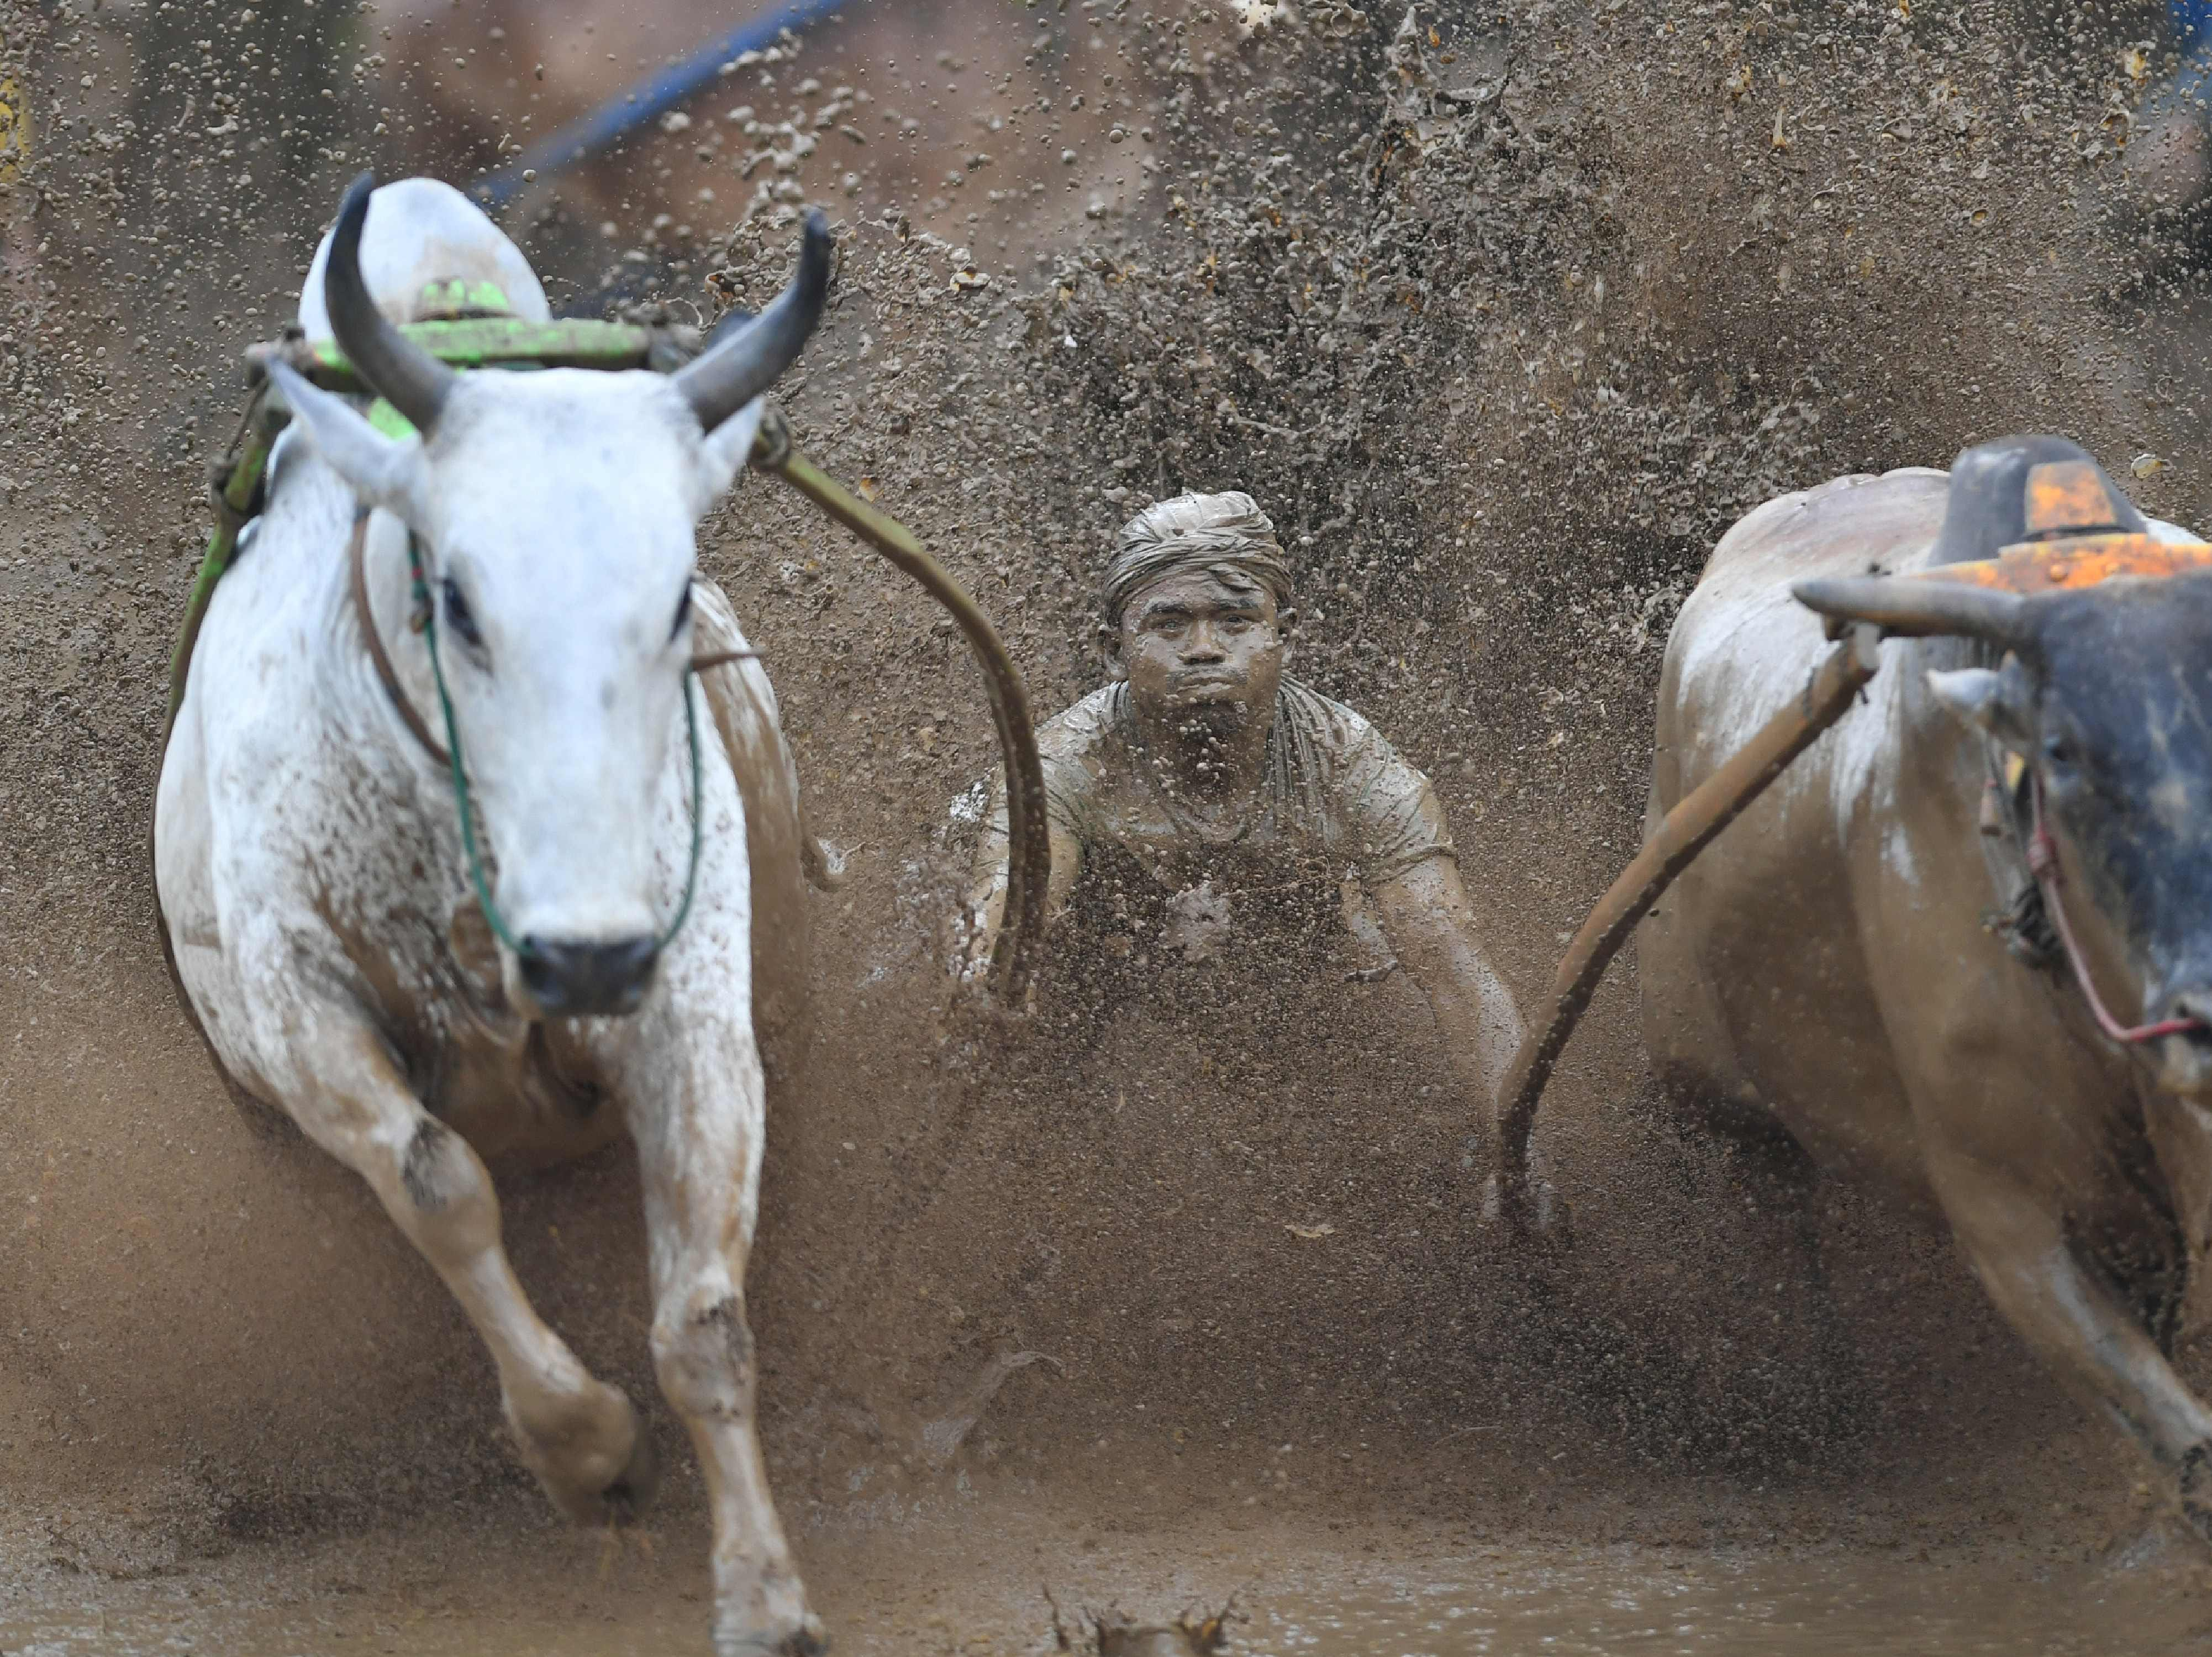 """An Indonesian jockey rides two bulls with a cart during a traditional sport bull race locally called """"pacu jawi"""" in Pariangan, West Sumatra on Dec. 1, 2018."""